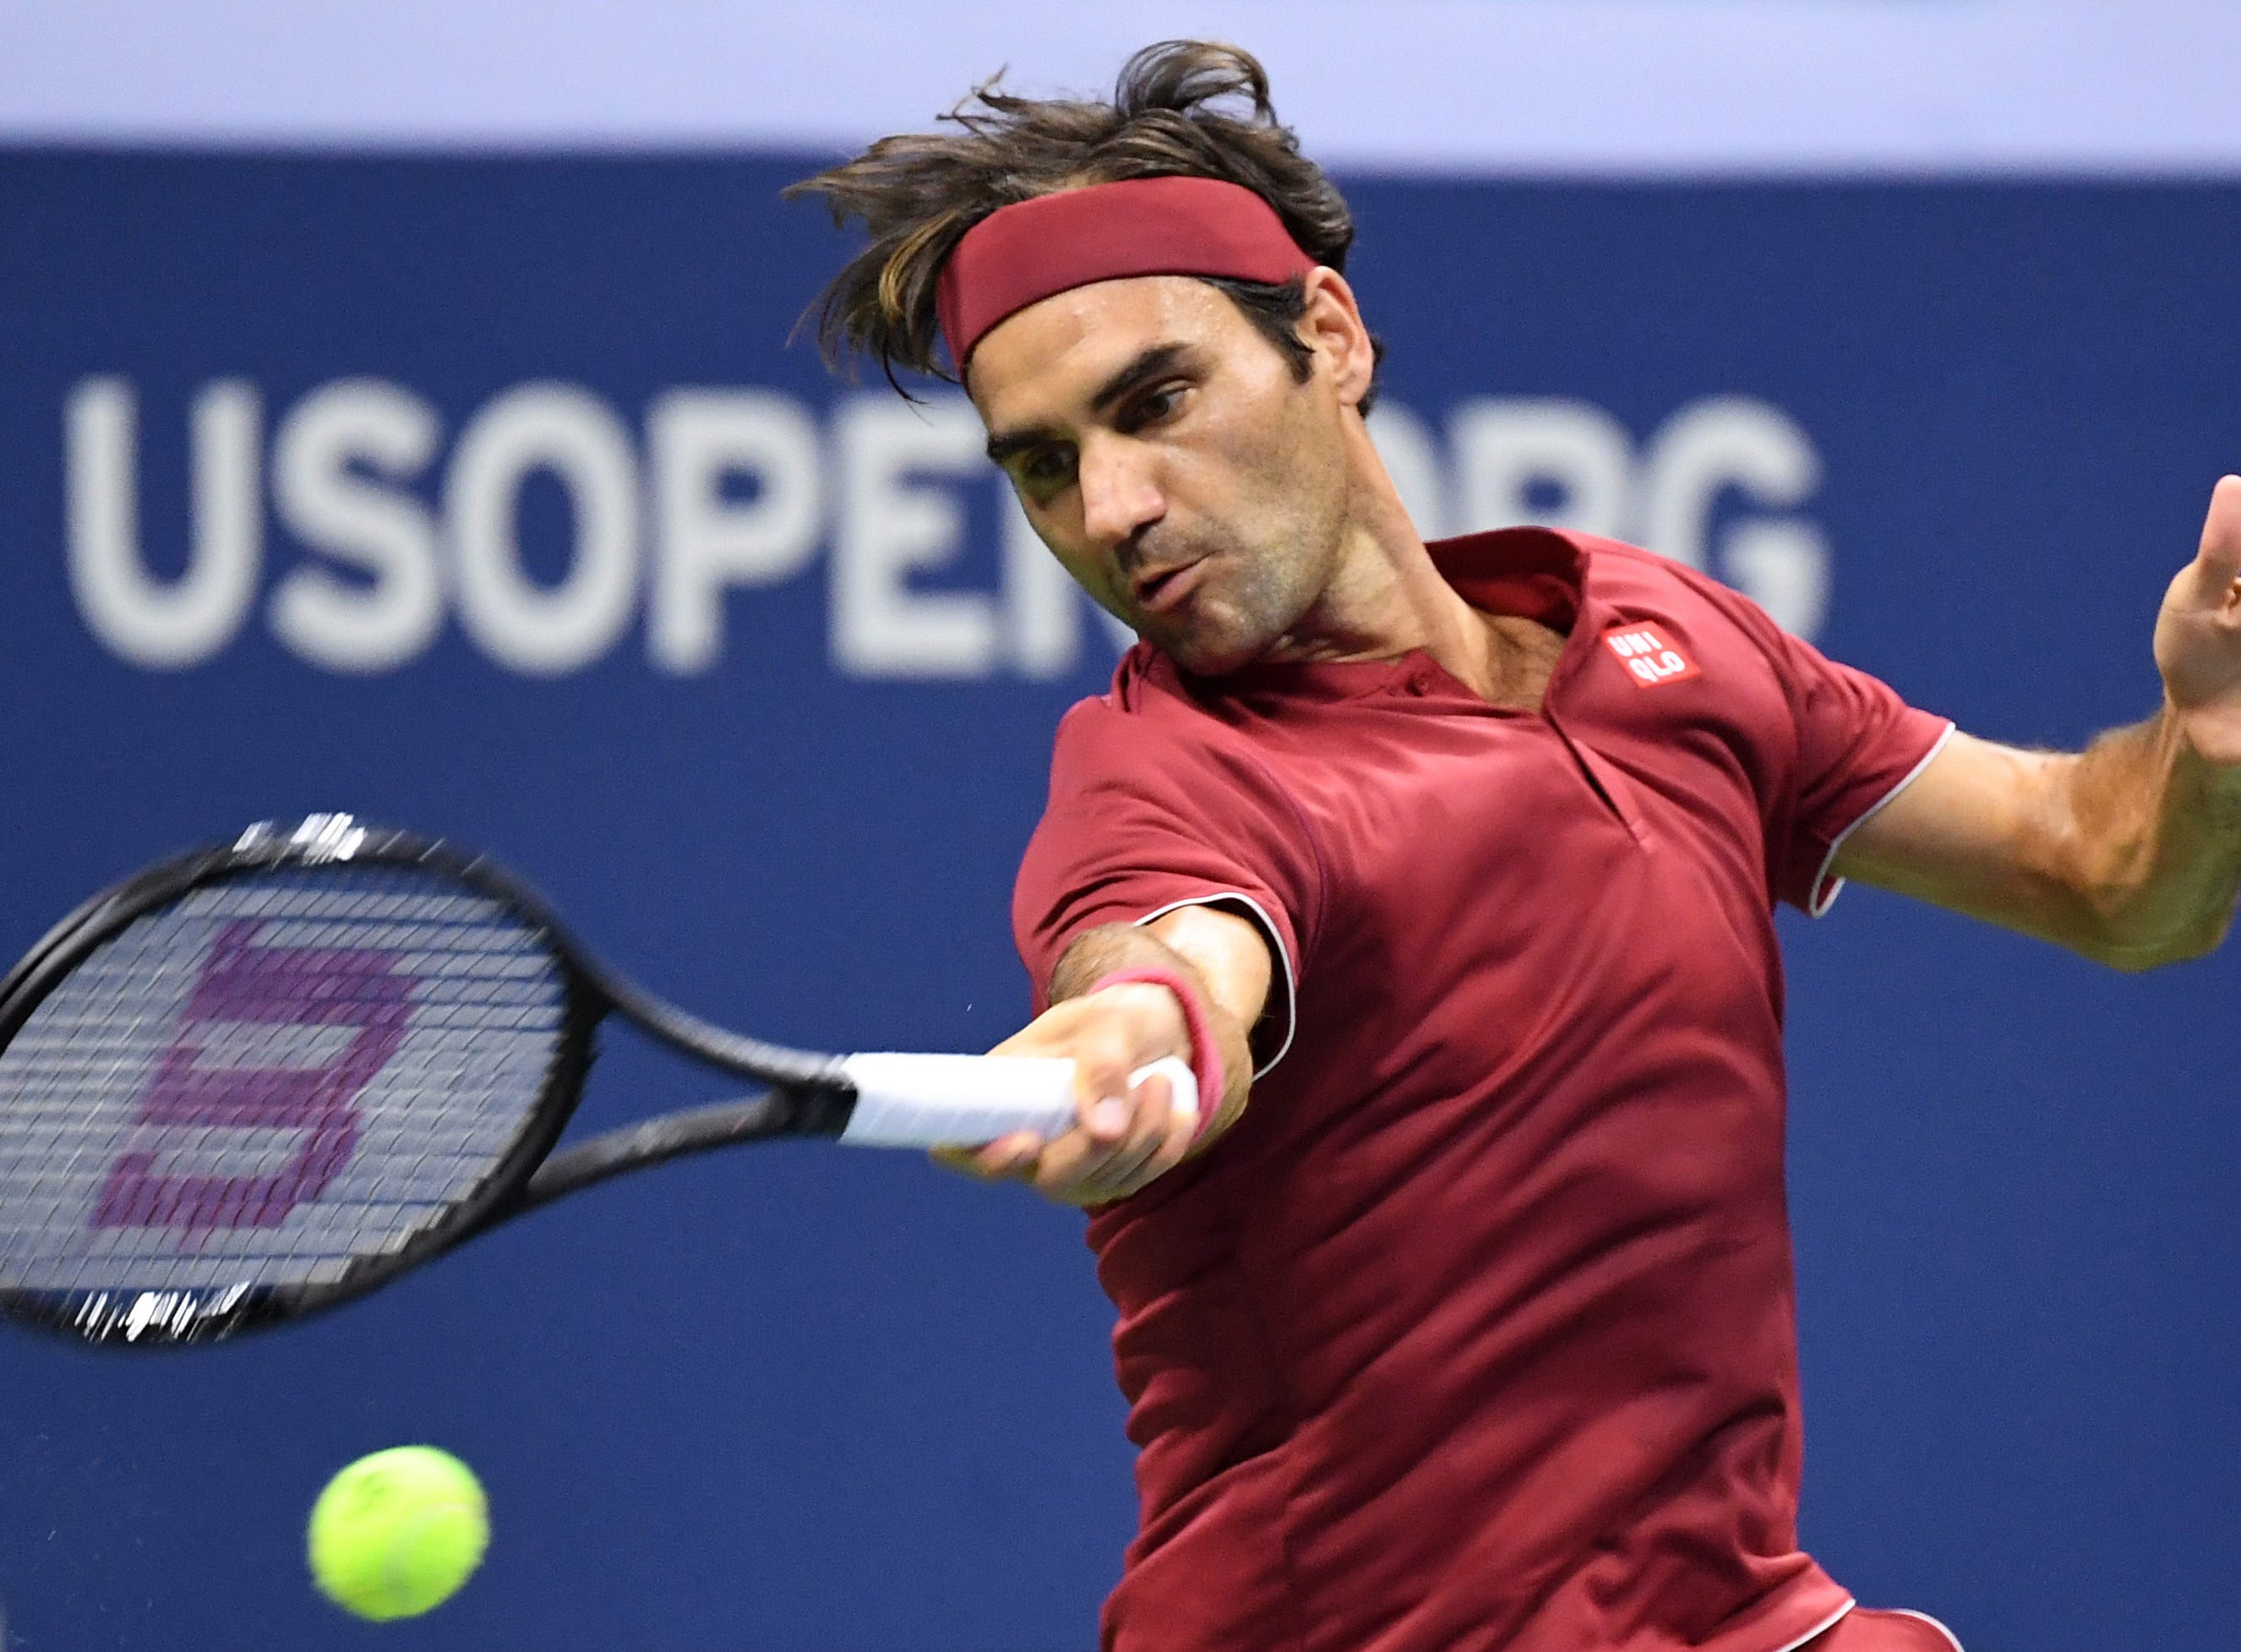 Roger Federer returns a shot against John Millman in the fourth round.